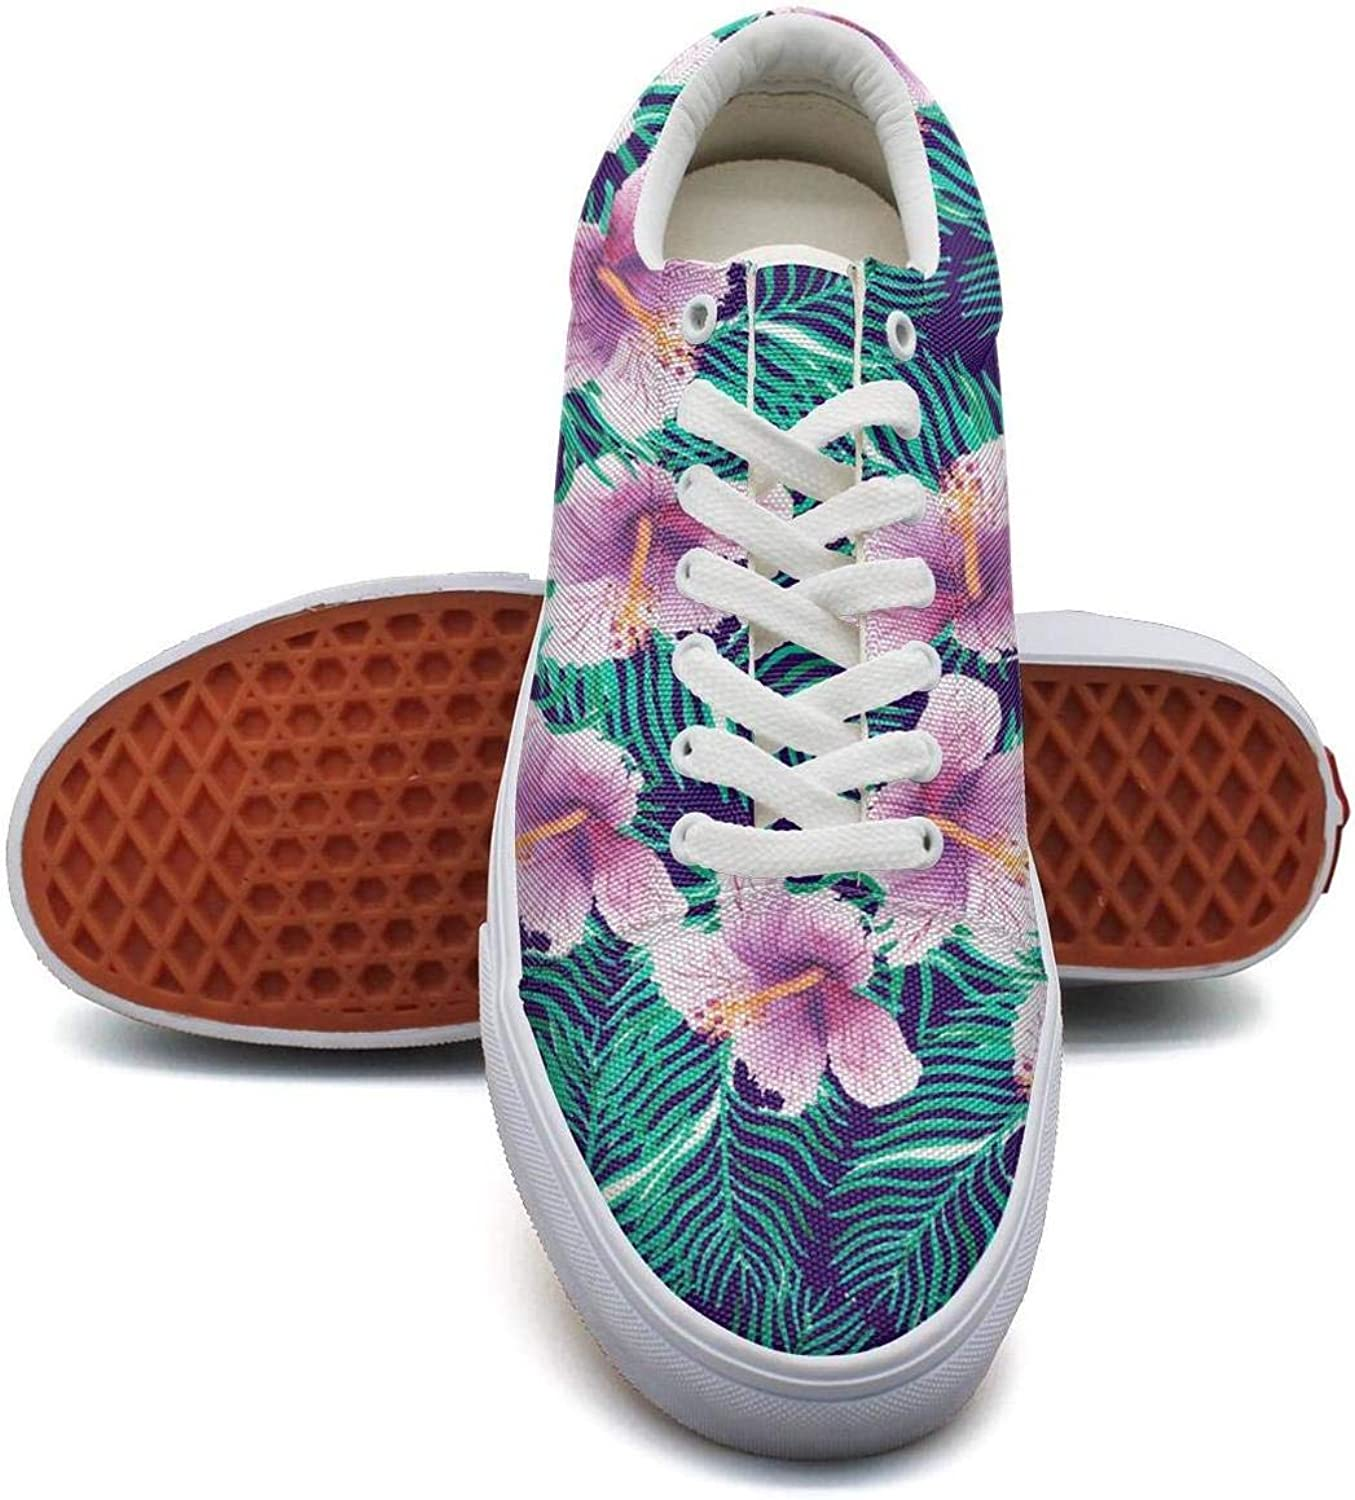 KSOWE3KD Women's Mens' Lightweight Slip-On shoes Hawaiian Flower Popular Unisex Casual shoes